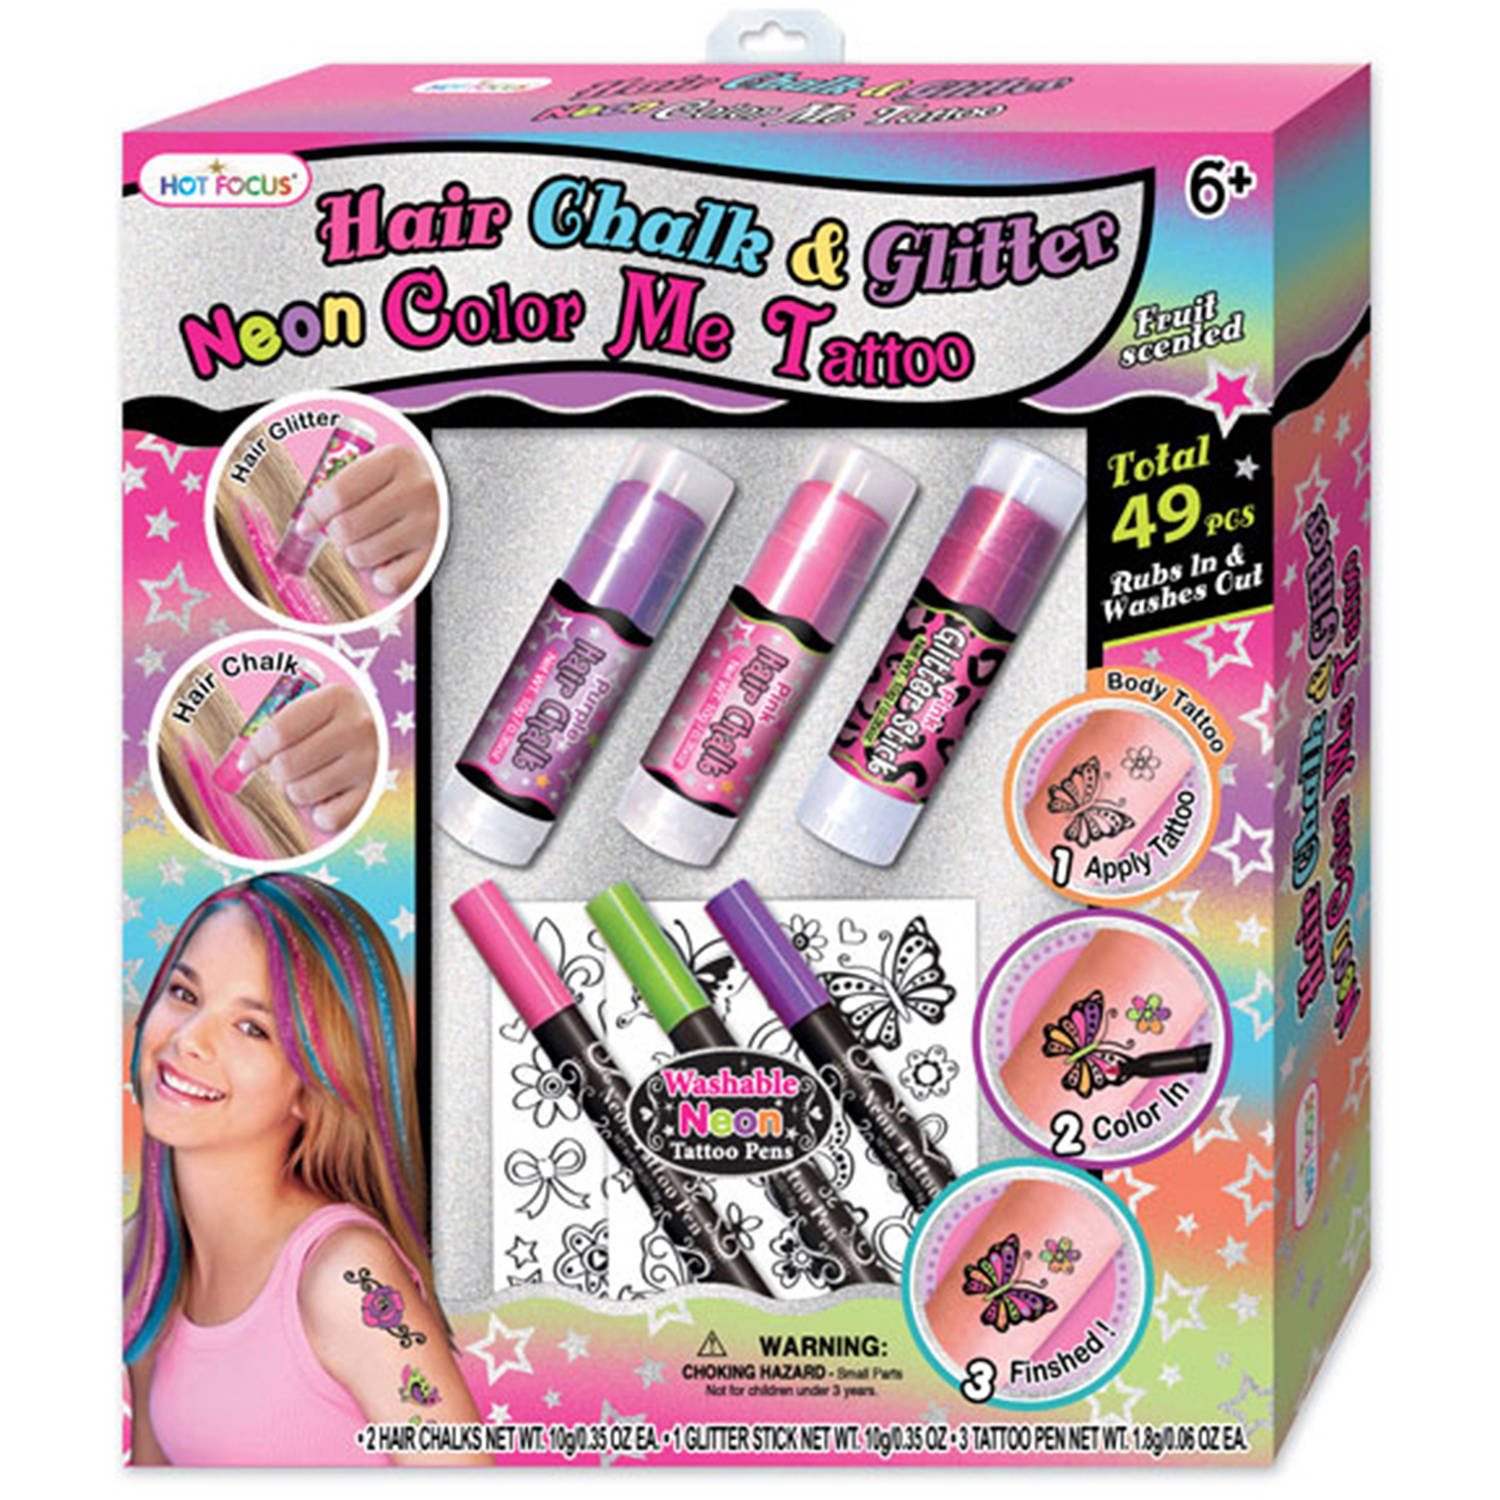 Focus Hair Chalk and Glitter Neon Color Me Tattoo Gift Set